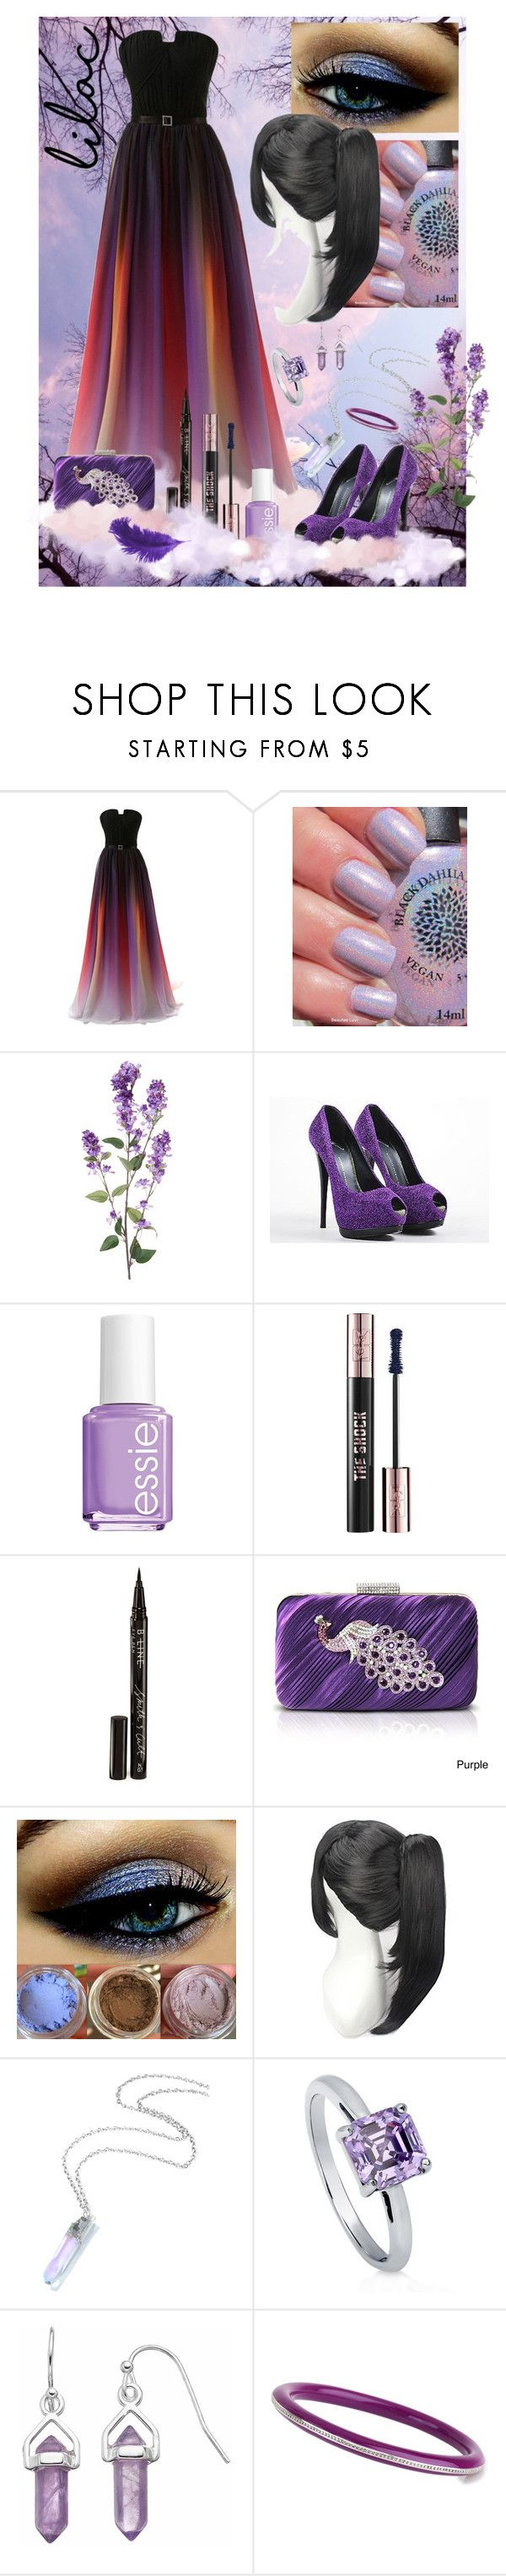 """047 Lilac Dreams"" by berry2206 on Polyvore featuring Mode, Giuseppe Zanotti, Essie, Yves Saint Laurent, Smith & Cult, Jacki Design, BERRICLE und Miriam Salat"